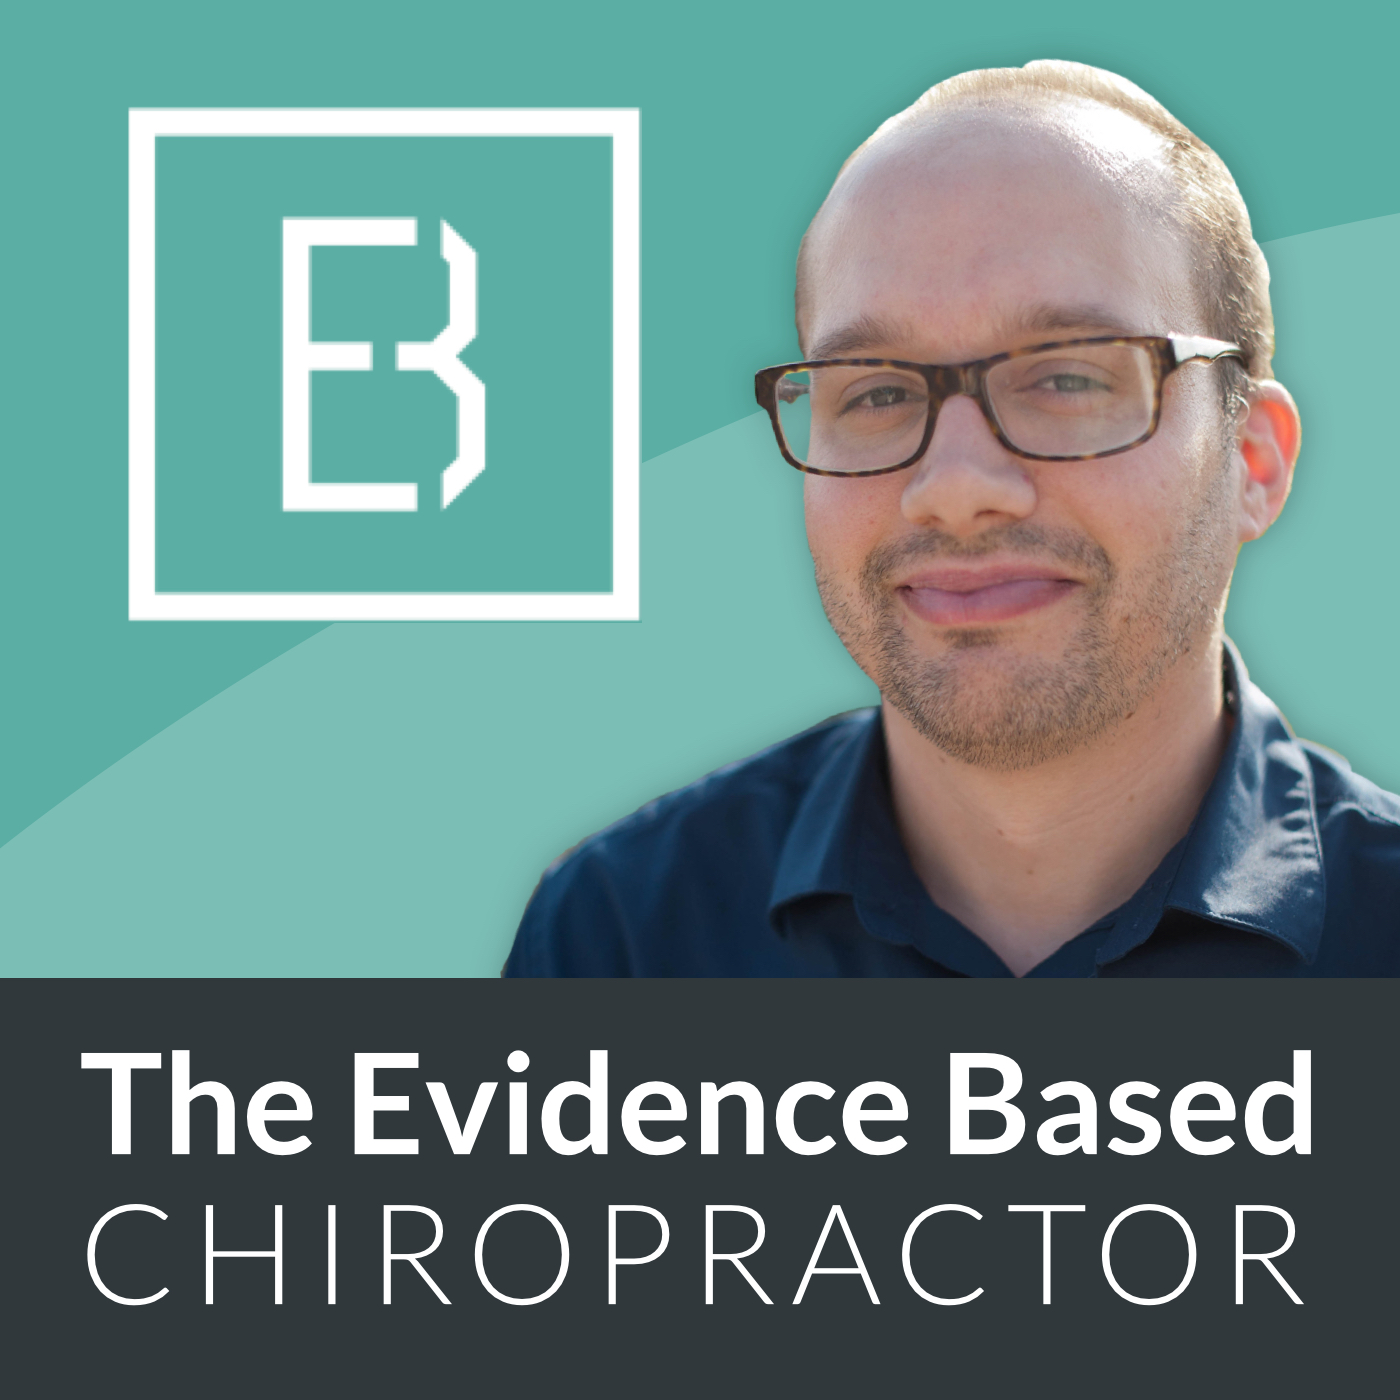 the-evidence-based-chiropractor-podcast.jpg